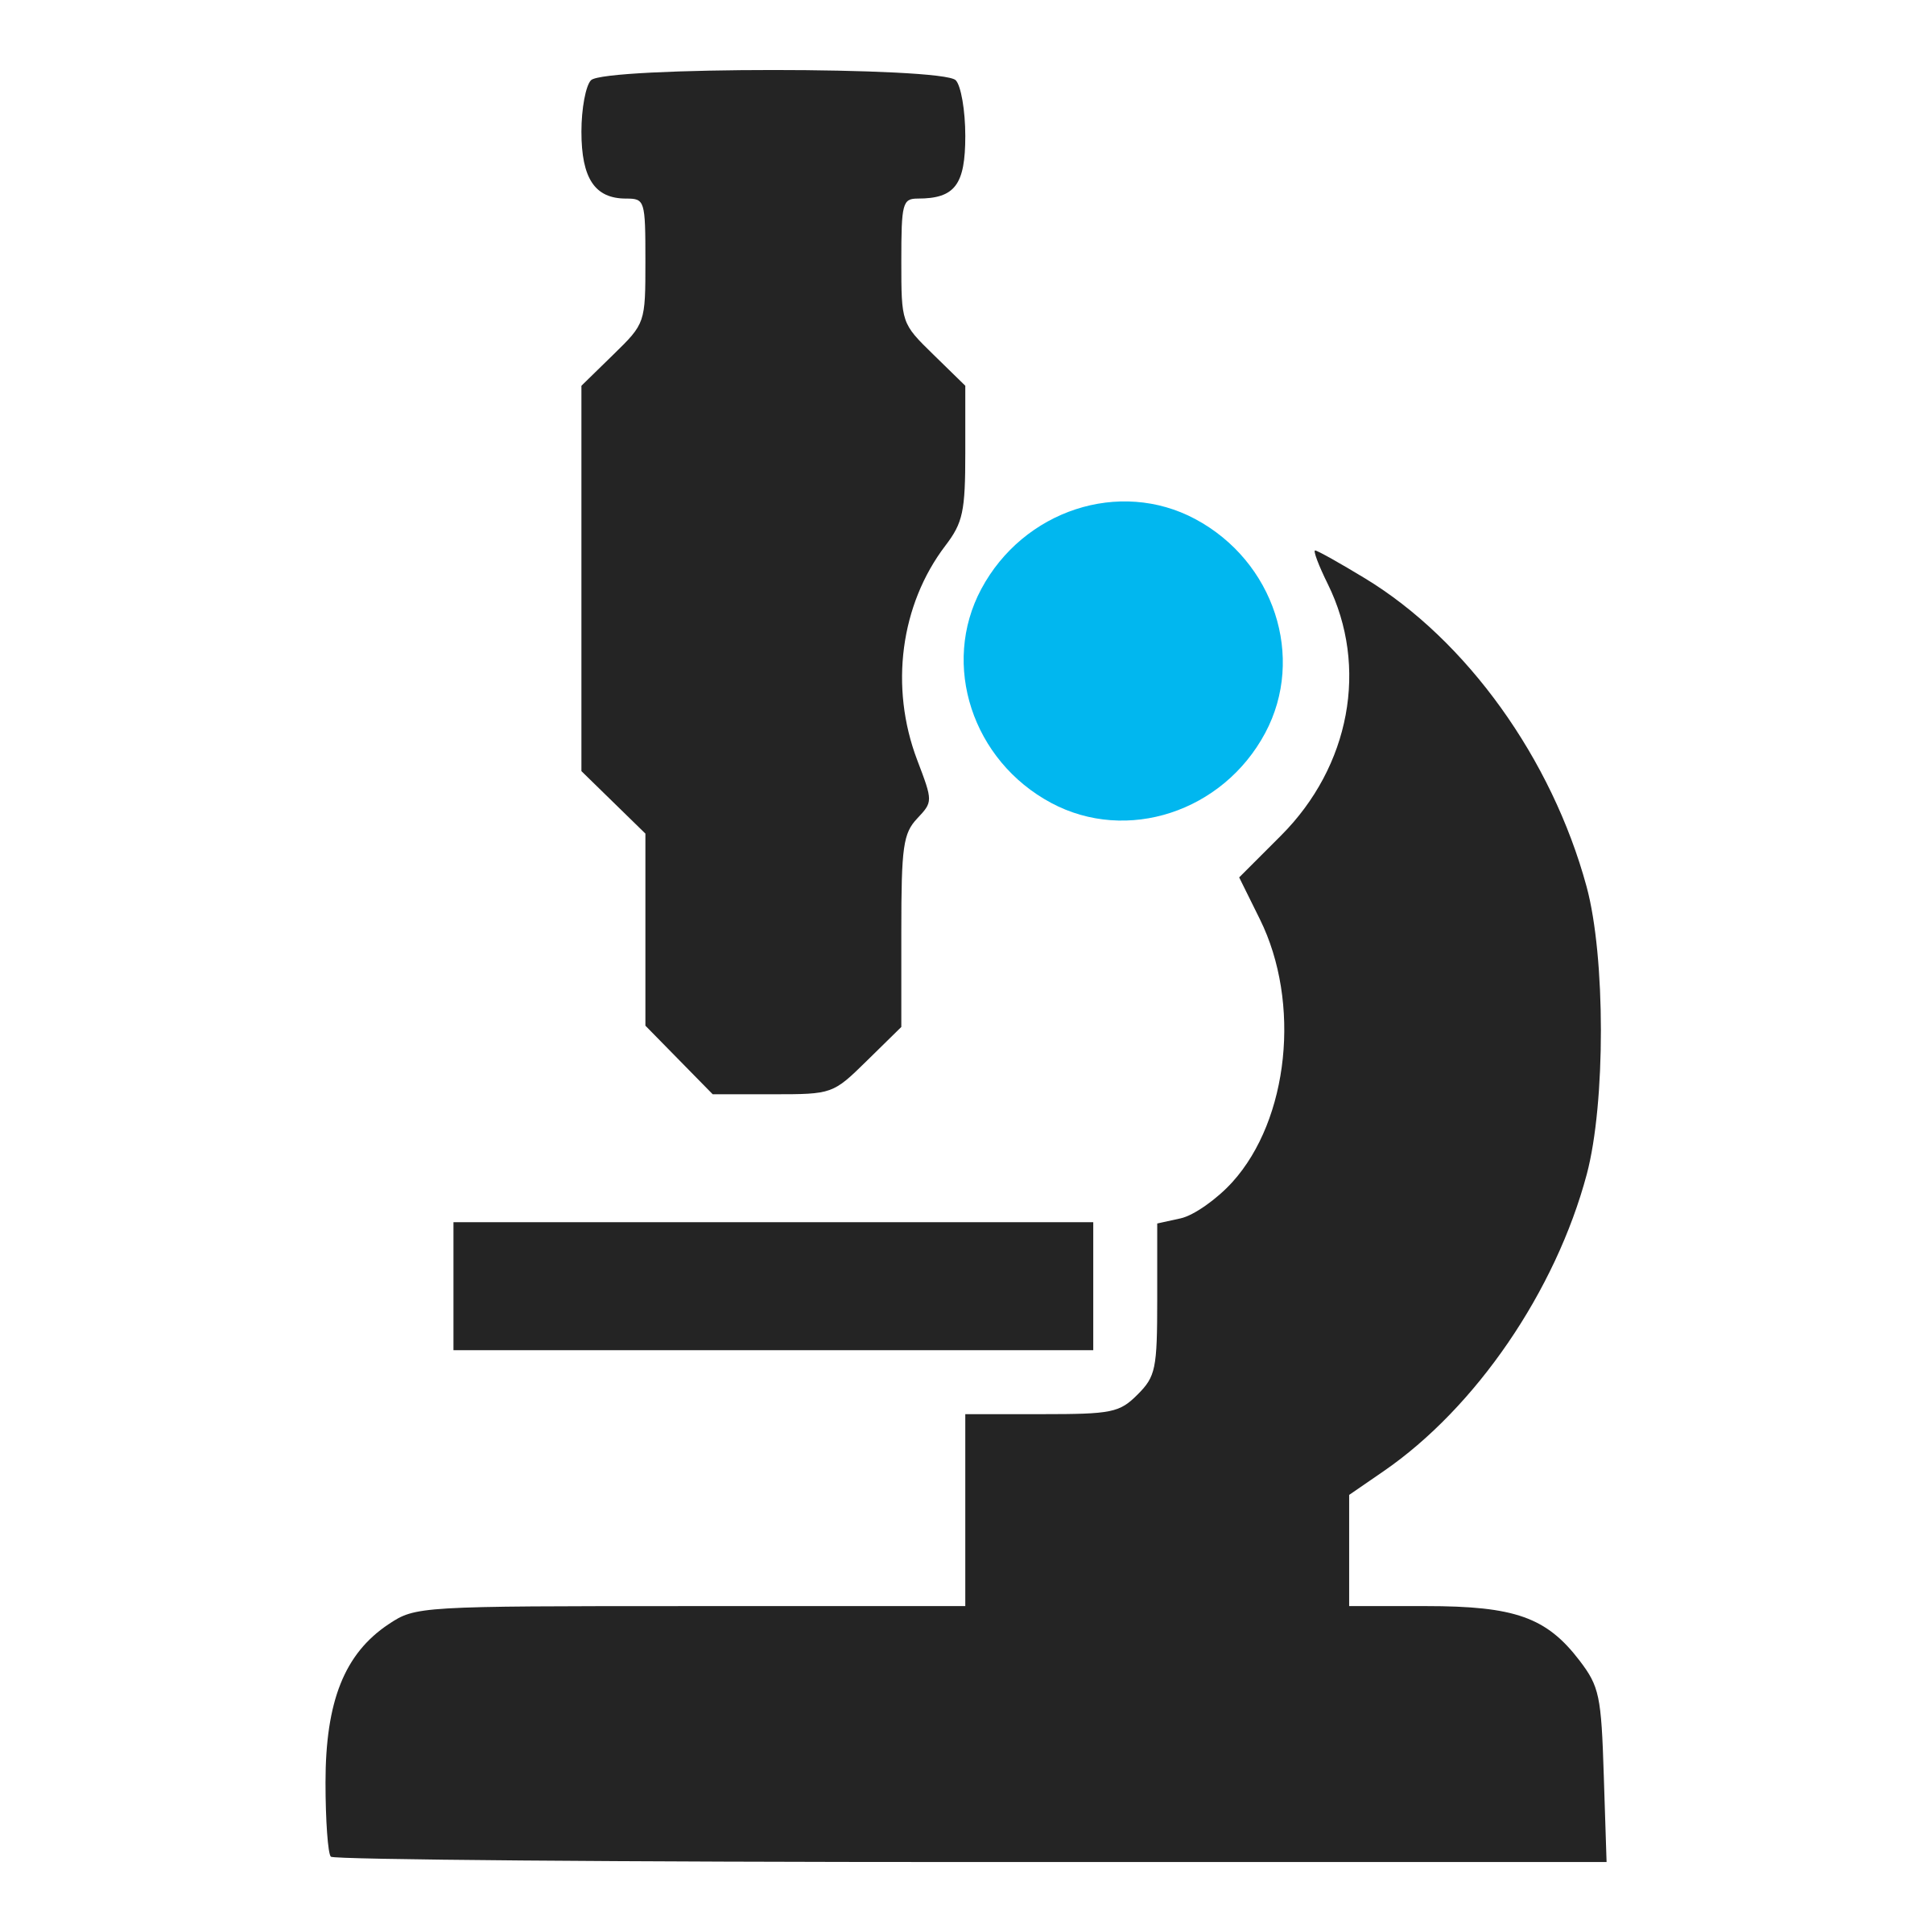 Icon big image png. Microscope clipart science object